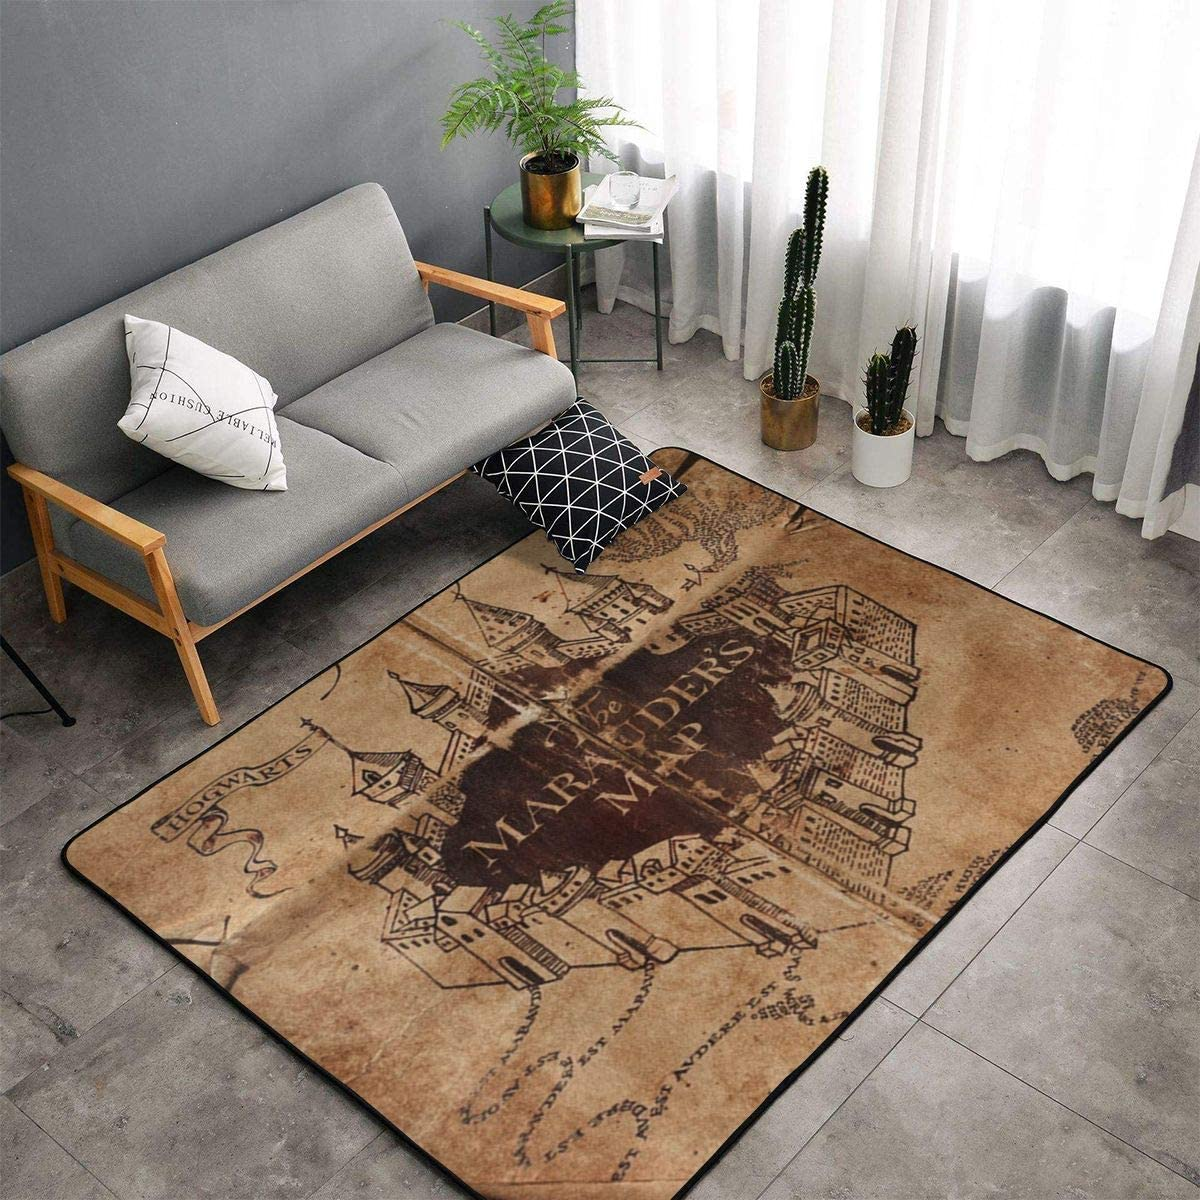 I Outlet SALE Like Exercise Marauders Map Super beauty product restock quality top! Kitchen Bedroom Room Living Rug K